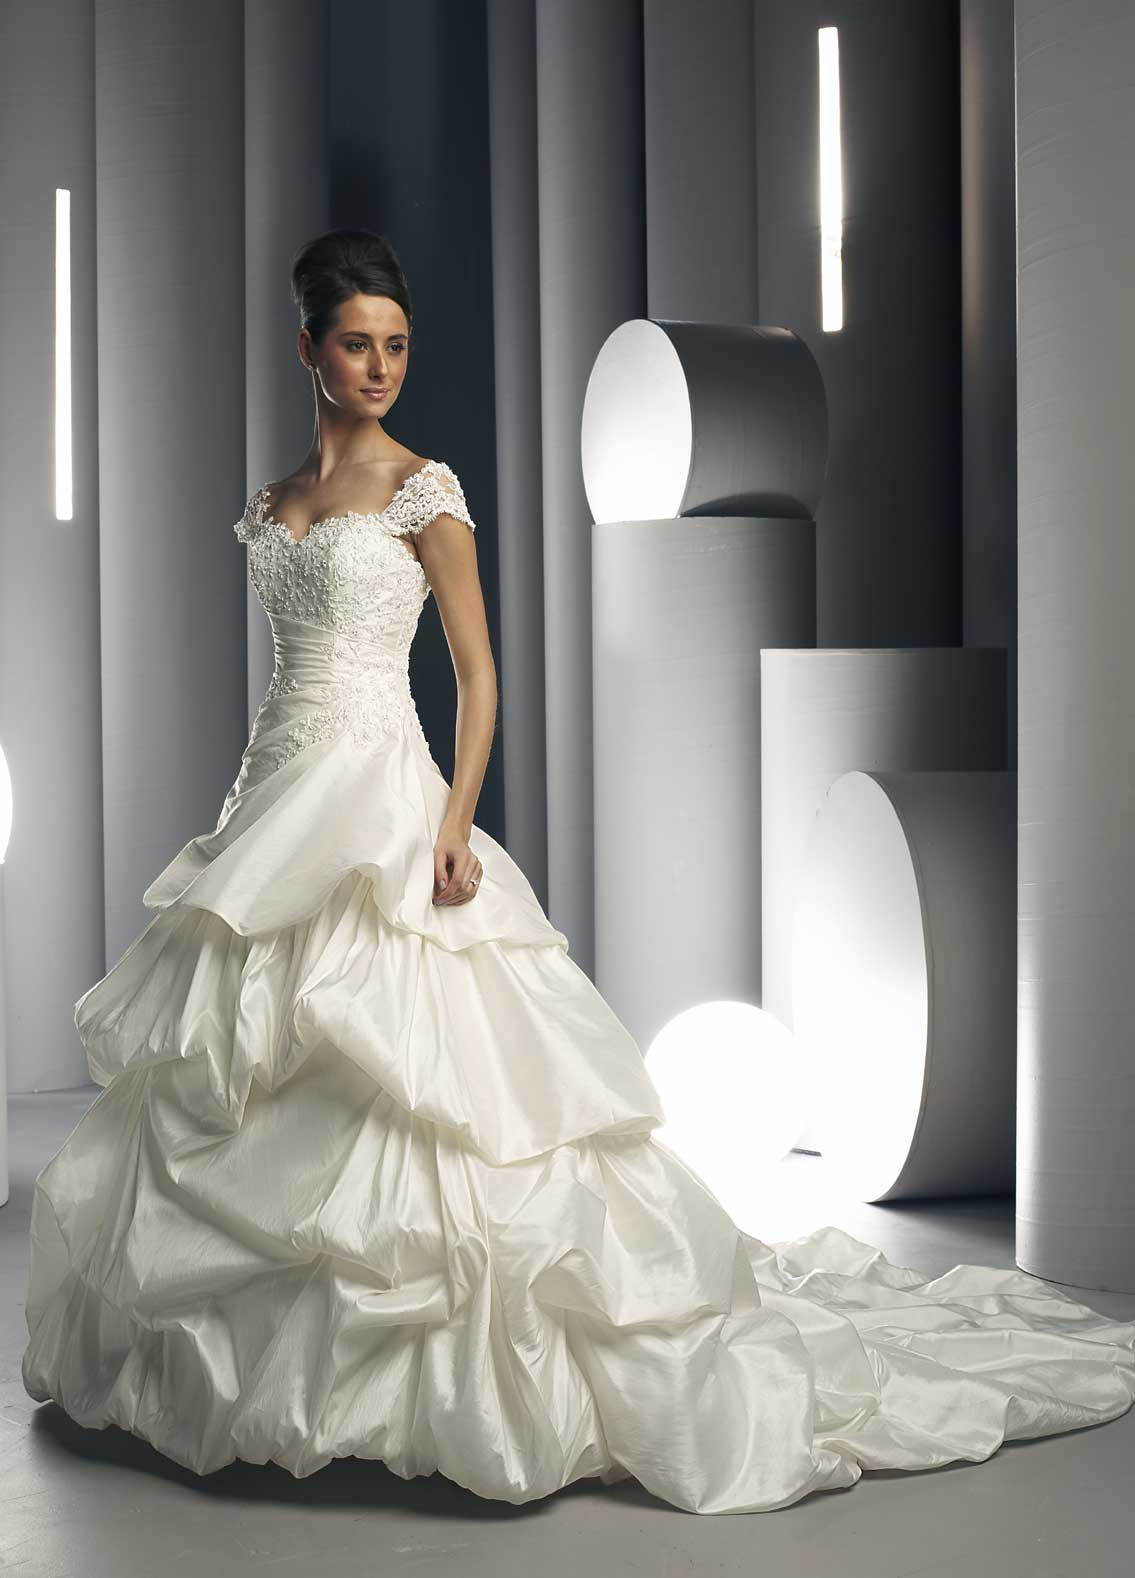 the tradition behind white wedding dresses white wedding dress white wedding dress with lace